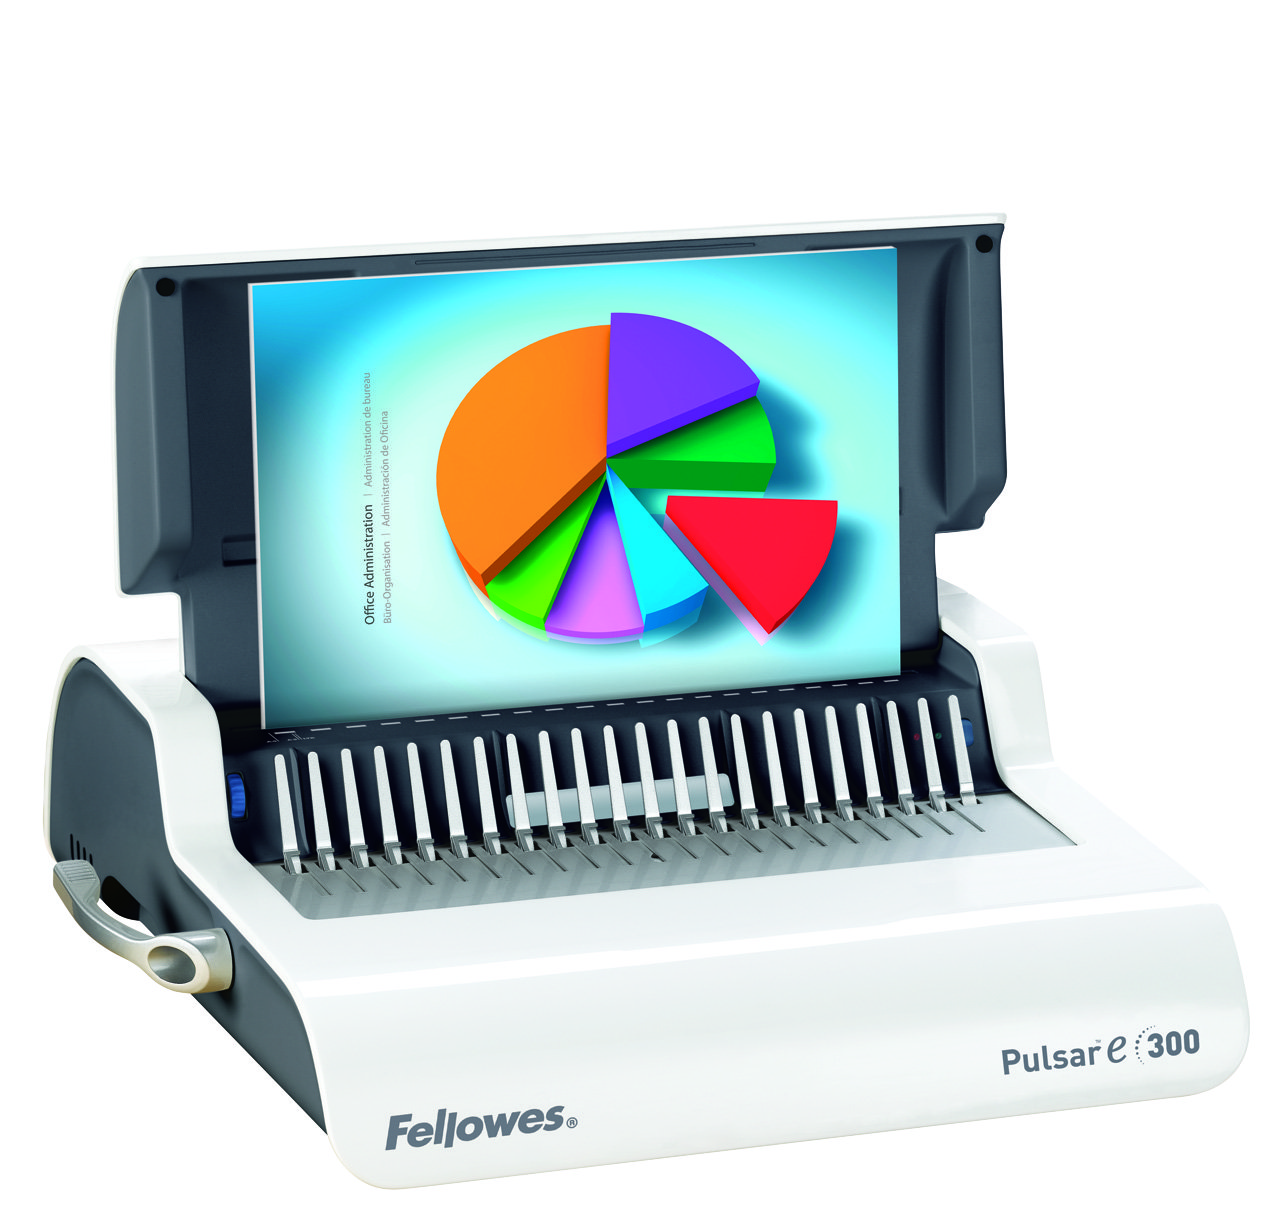 Image for Fellowes Pulsar A4 Comb Binding Machine